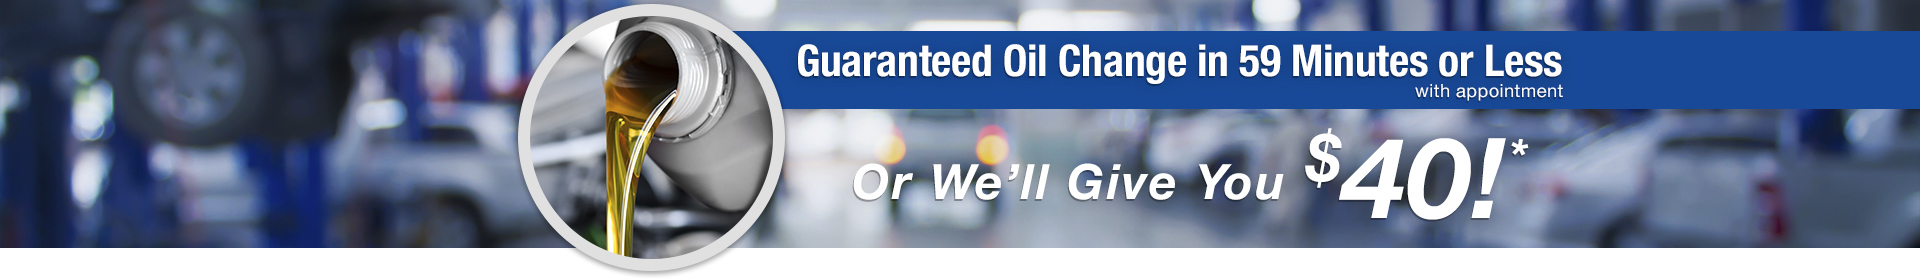 Guaranteed Oil Change in 59 Minutes or Less (with appointment) Or We'll Give You $40!*